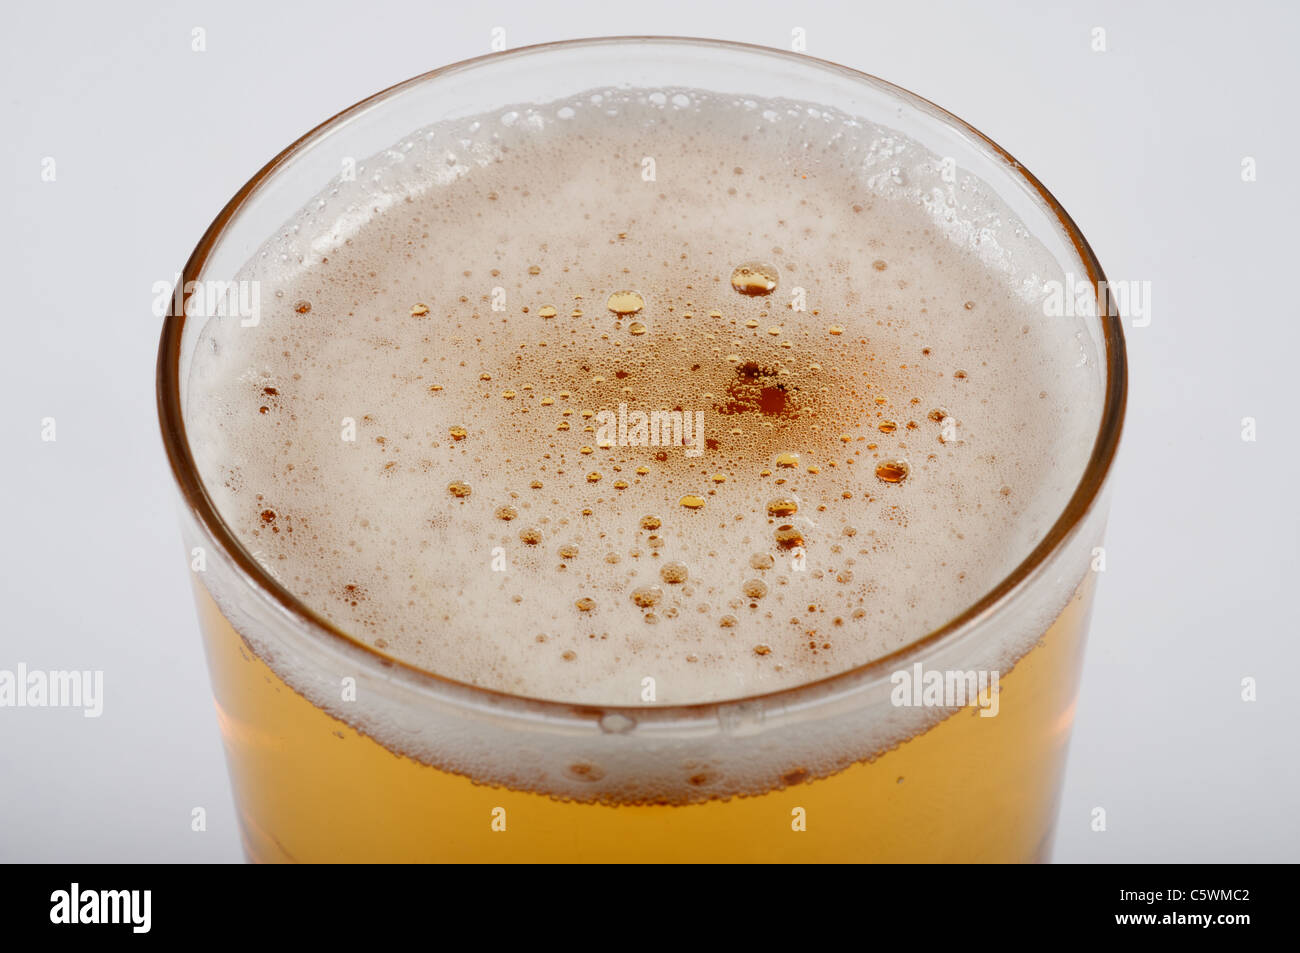 Glass of larger - Stock Image